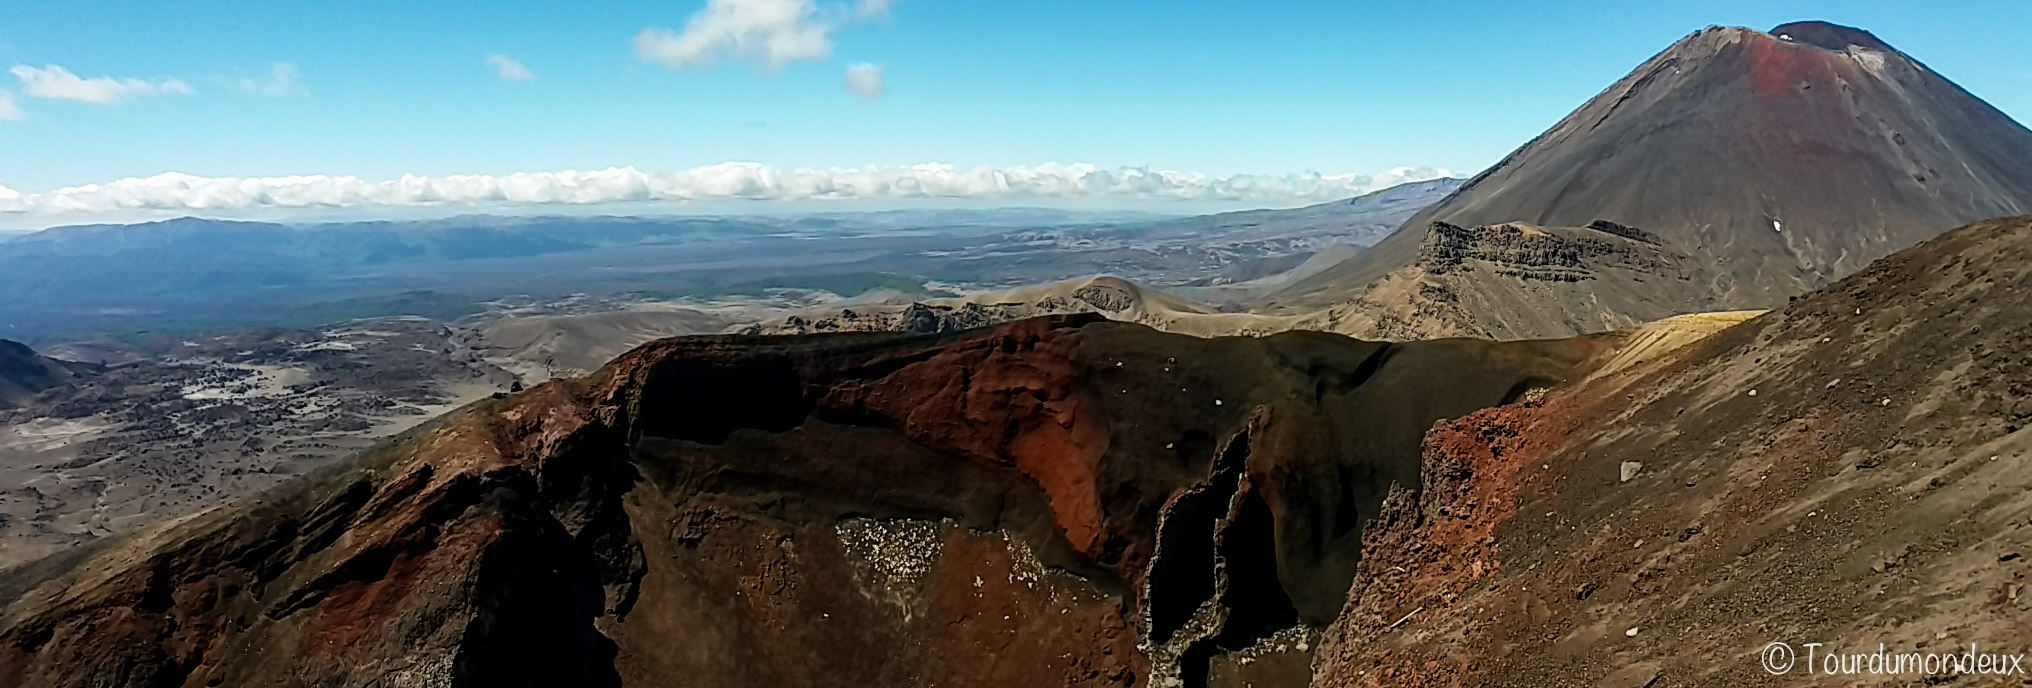 alpine-crossing-panorama-tongariro